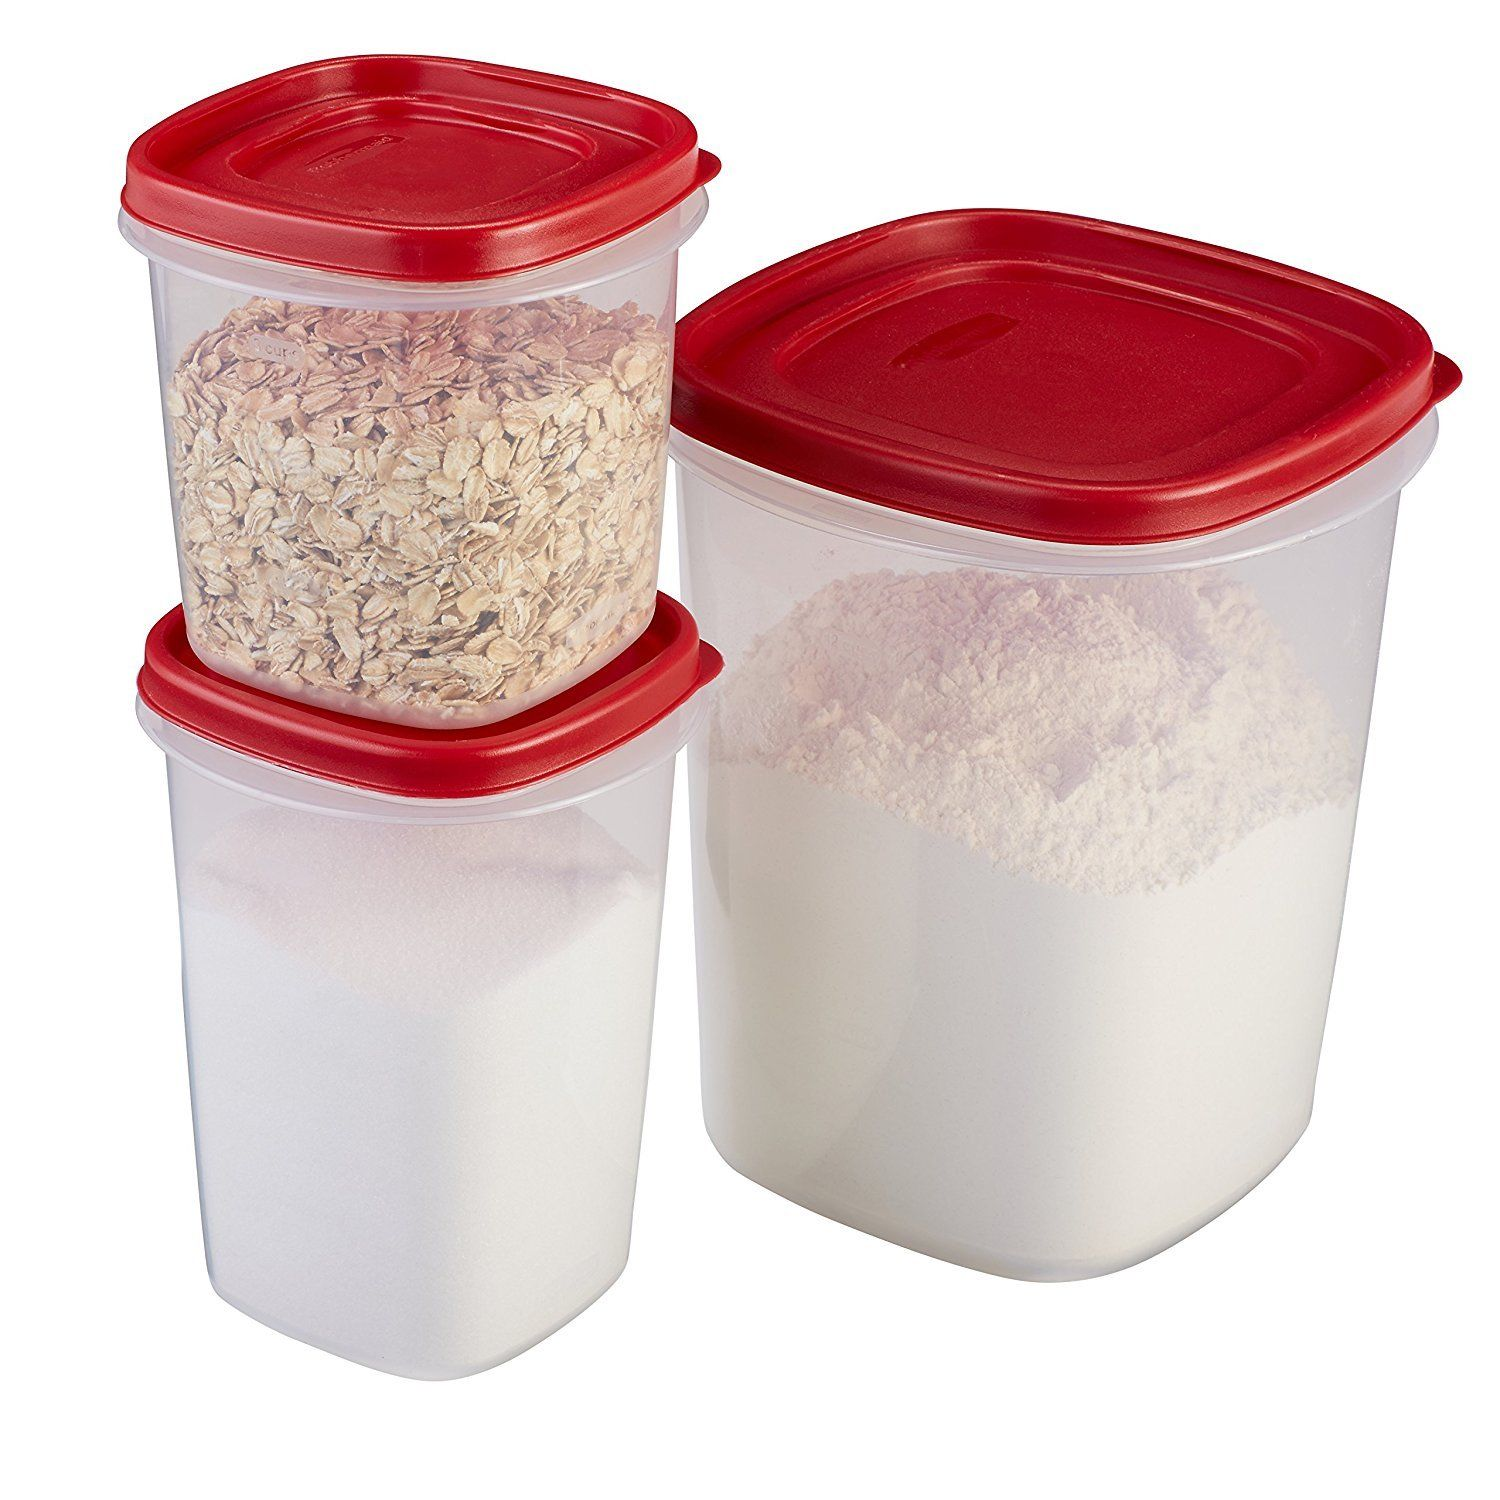 Rubbermaid Easy Find Lid Food Storage Container of BPA-Free Plastic, 6-Piece Set 1